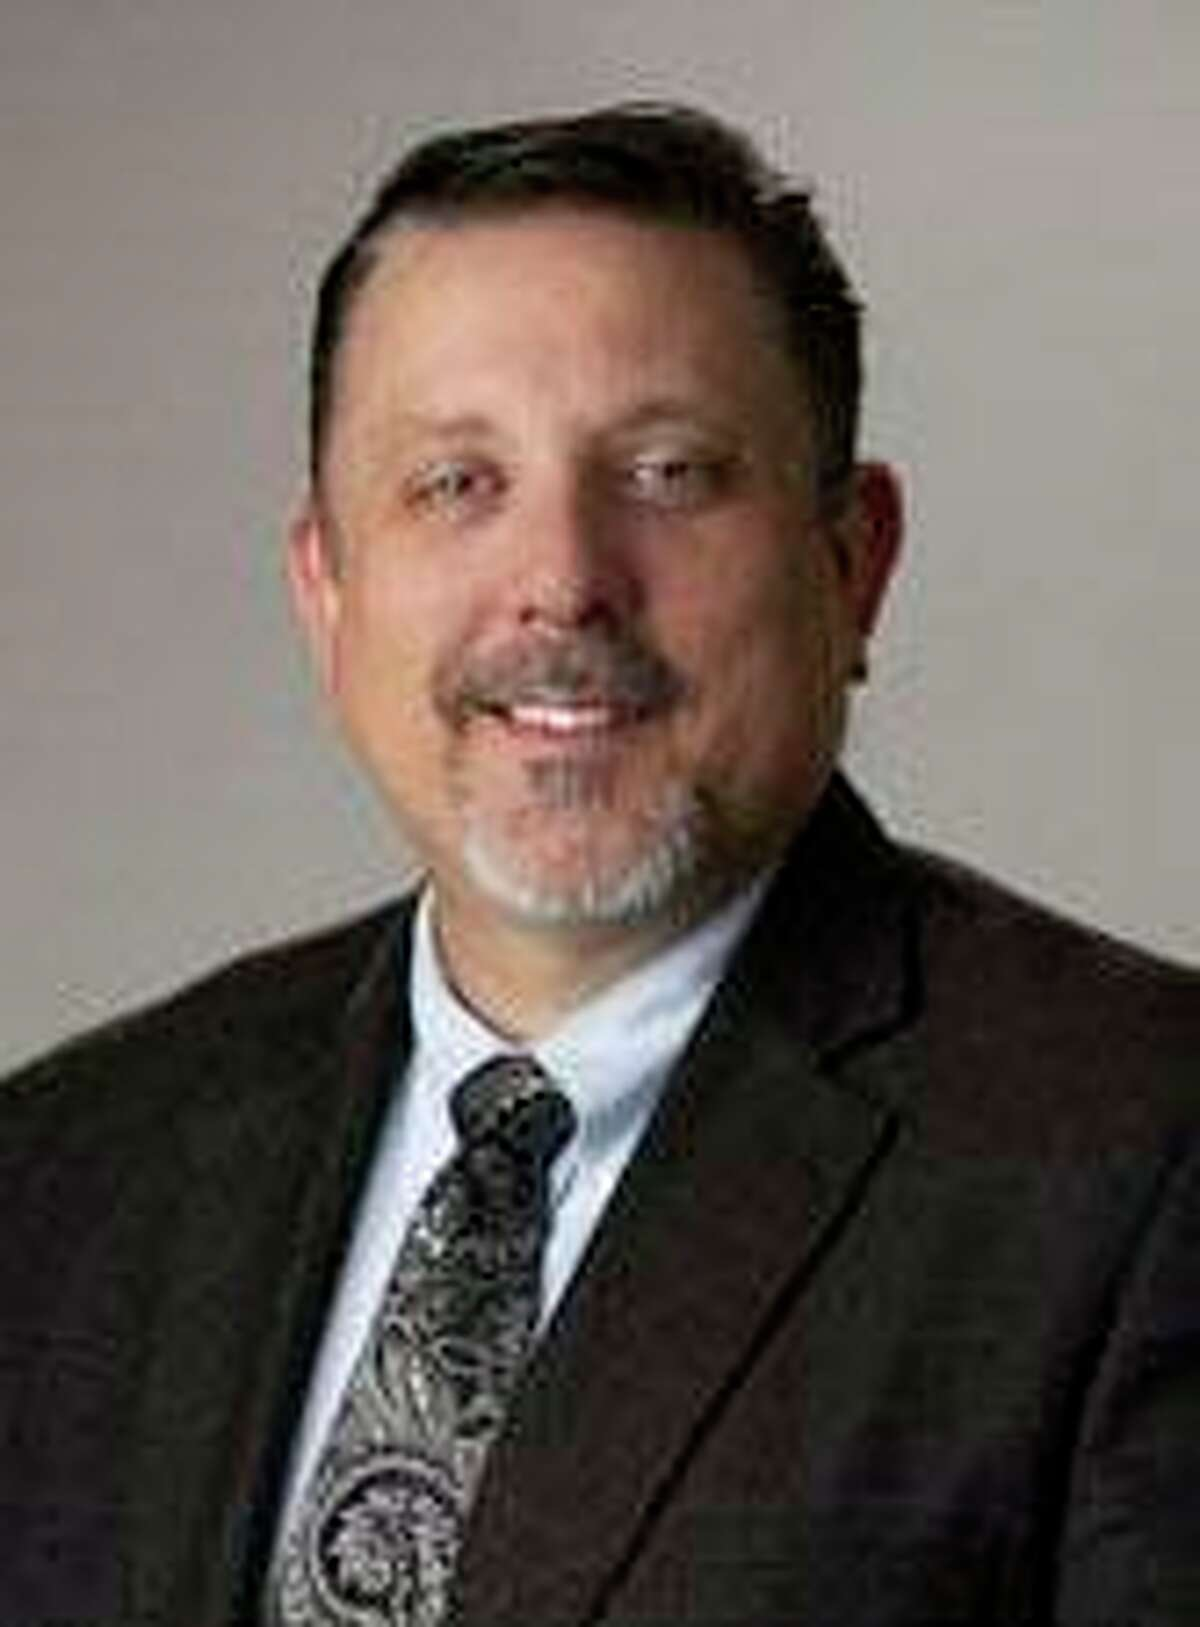 Brent Thor, of Conroe, member of the Montgomery County Hospital District Board of Directors.